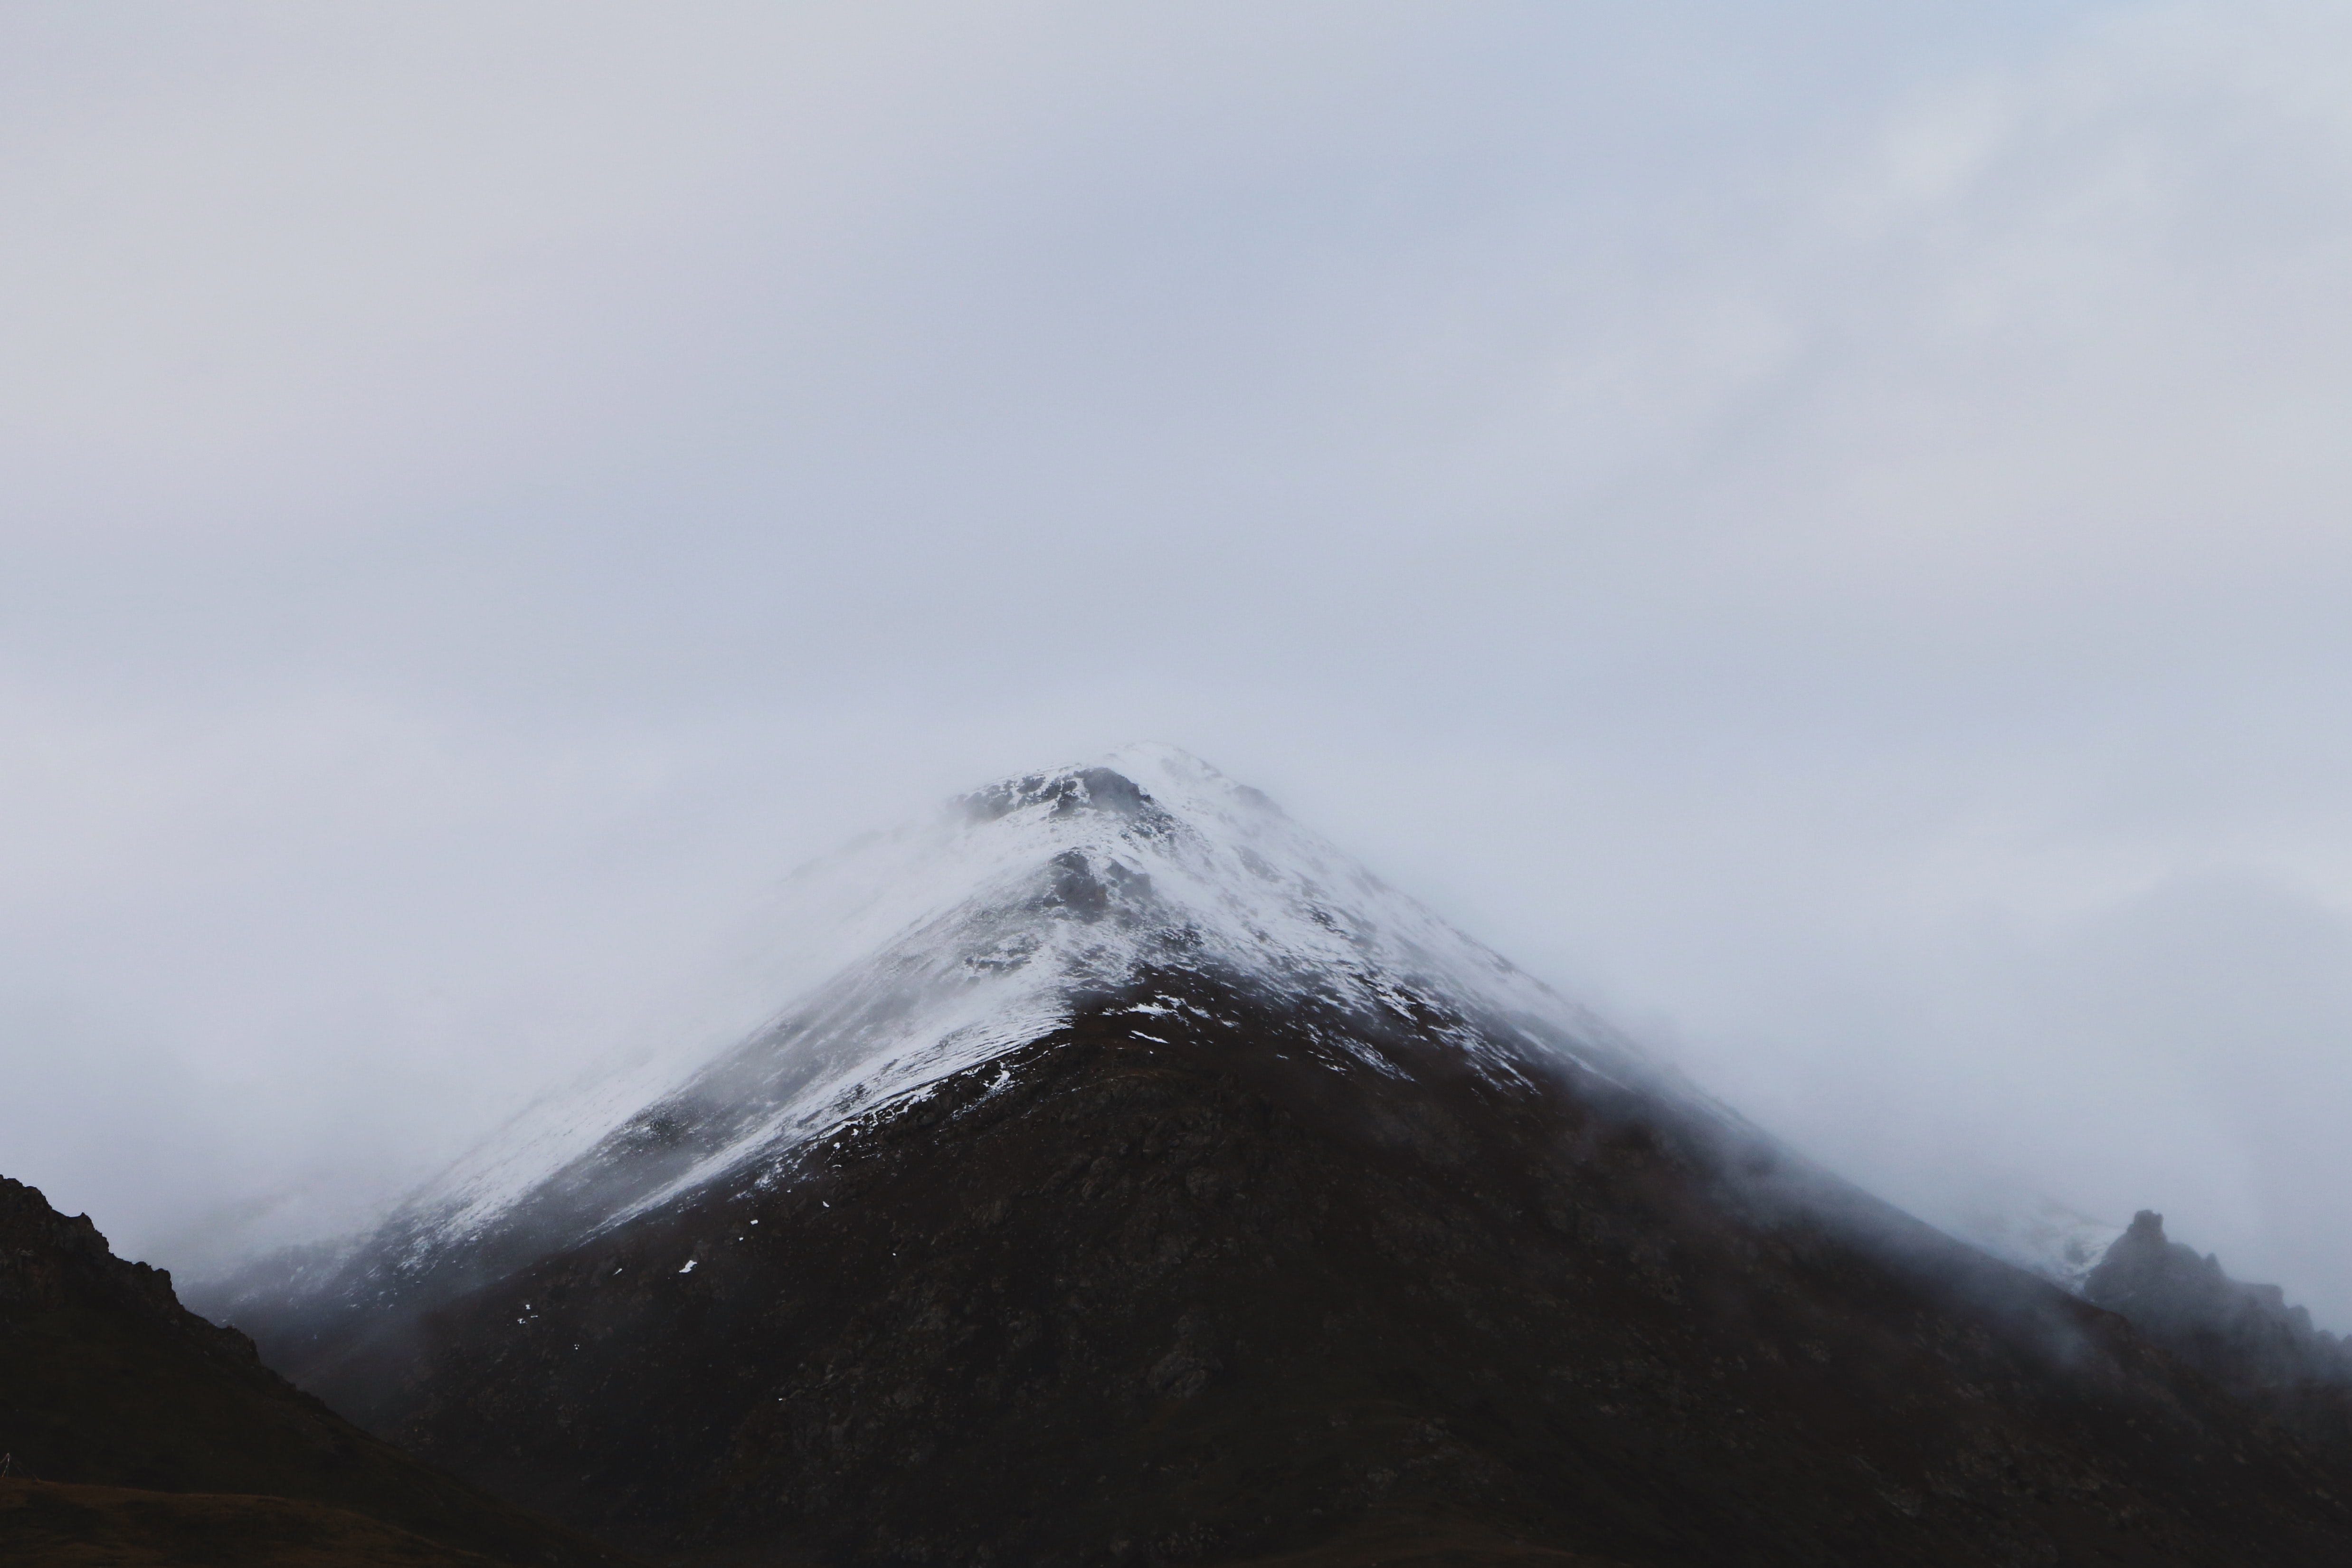 Snowy summit of a mountain covered by fog and clouds